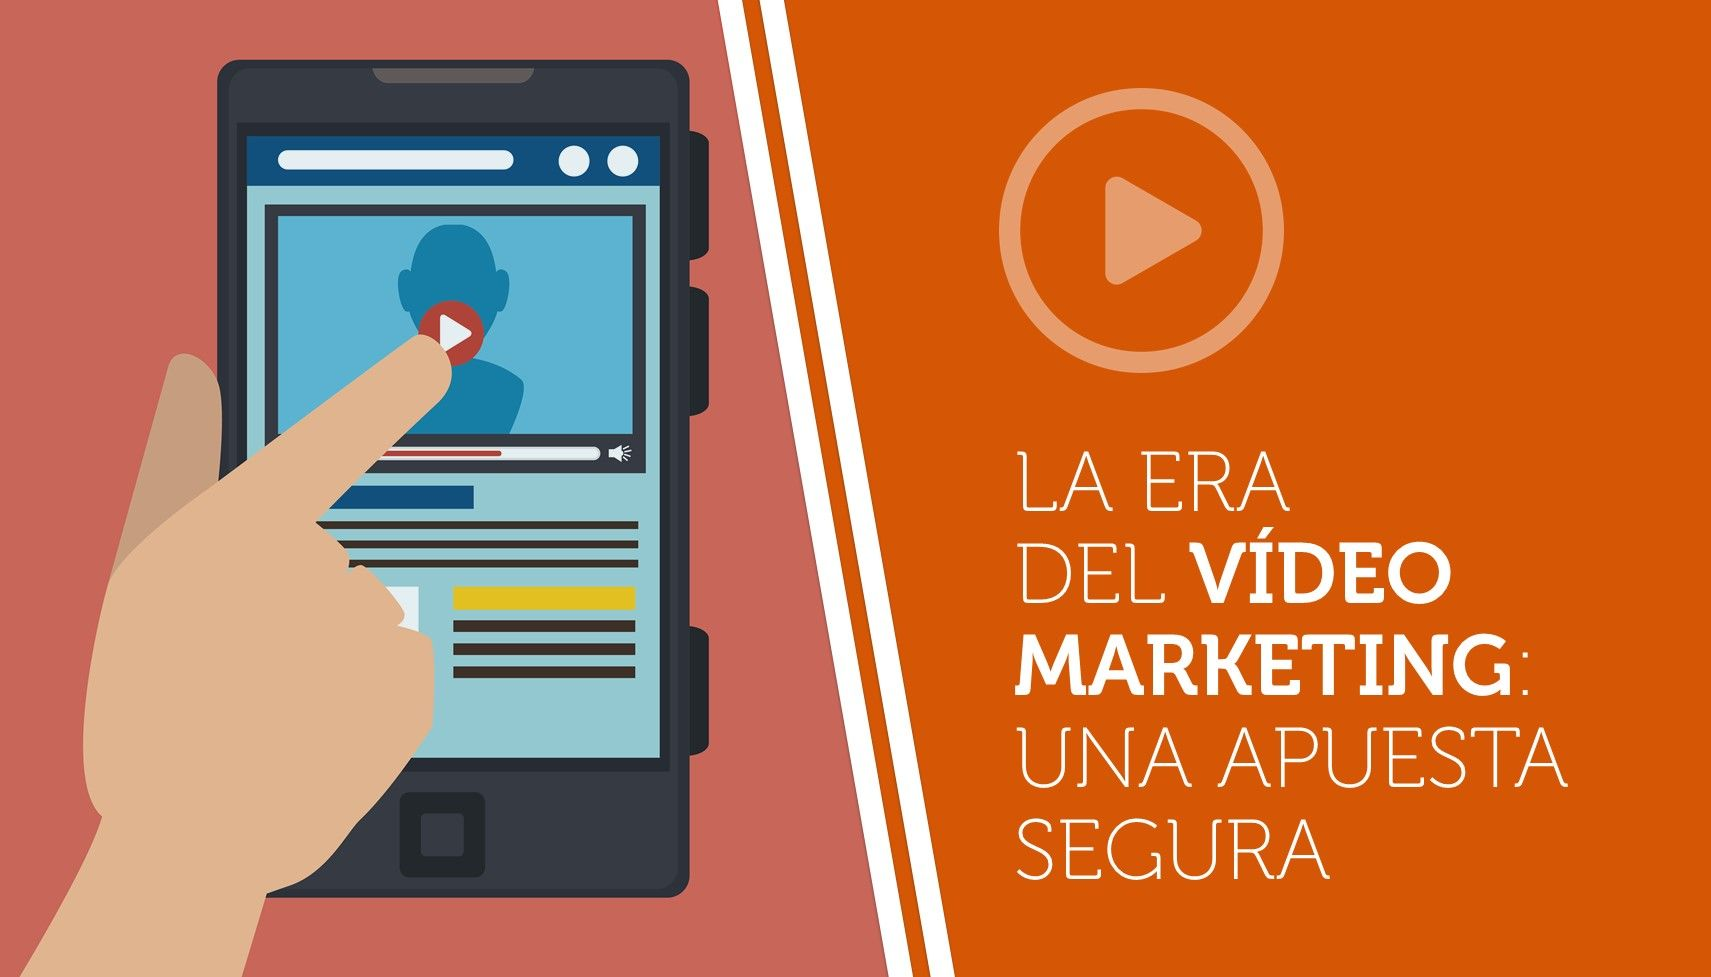 La era del vídeo marketing: una apuesta segura